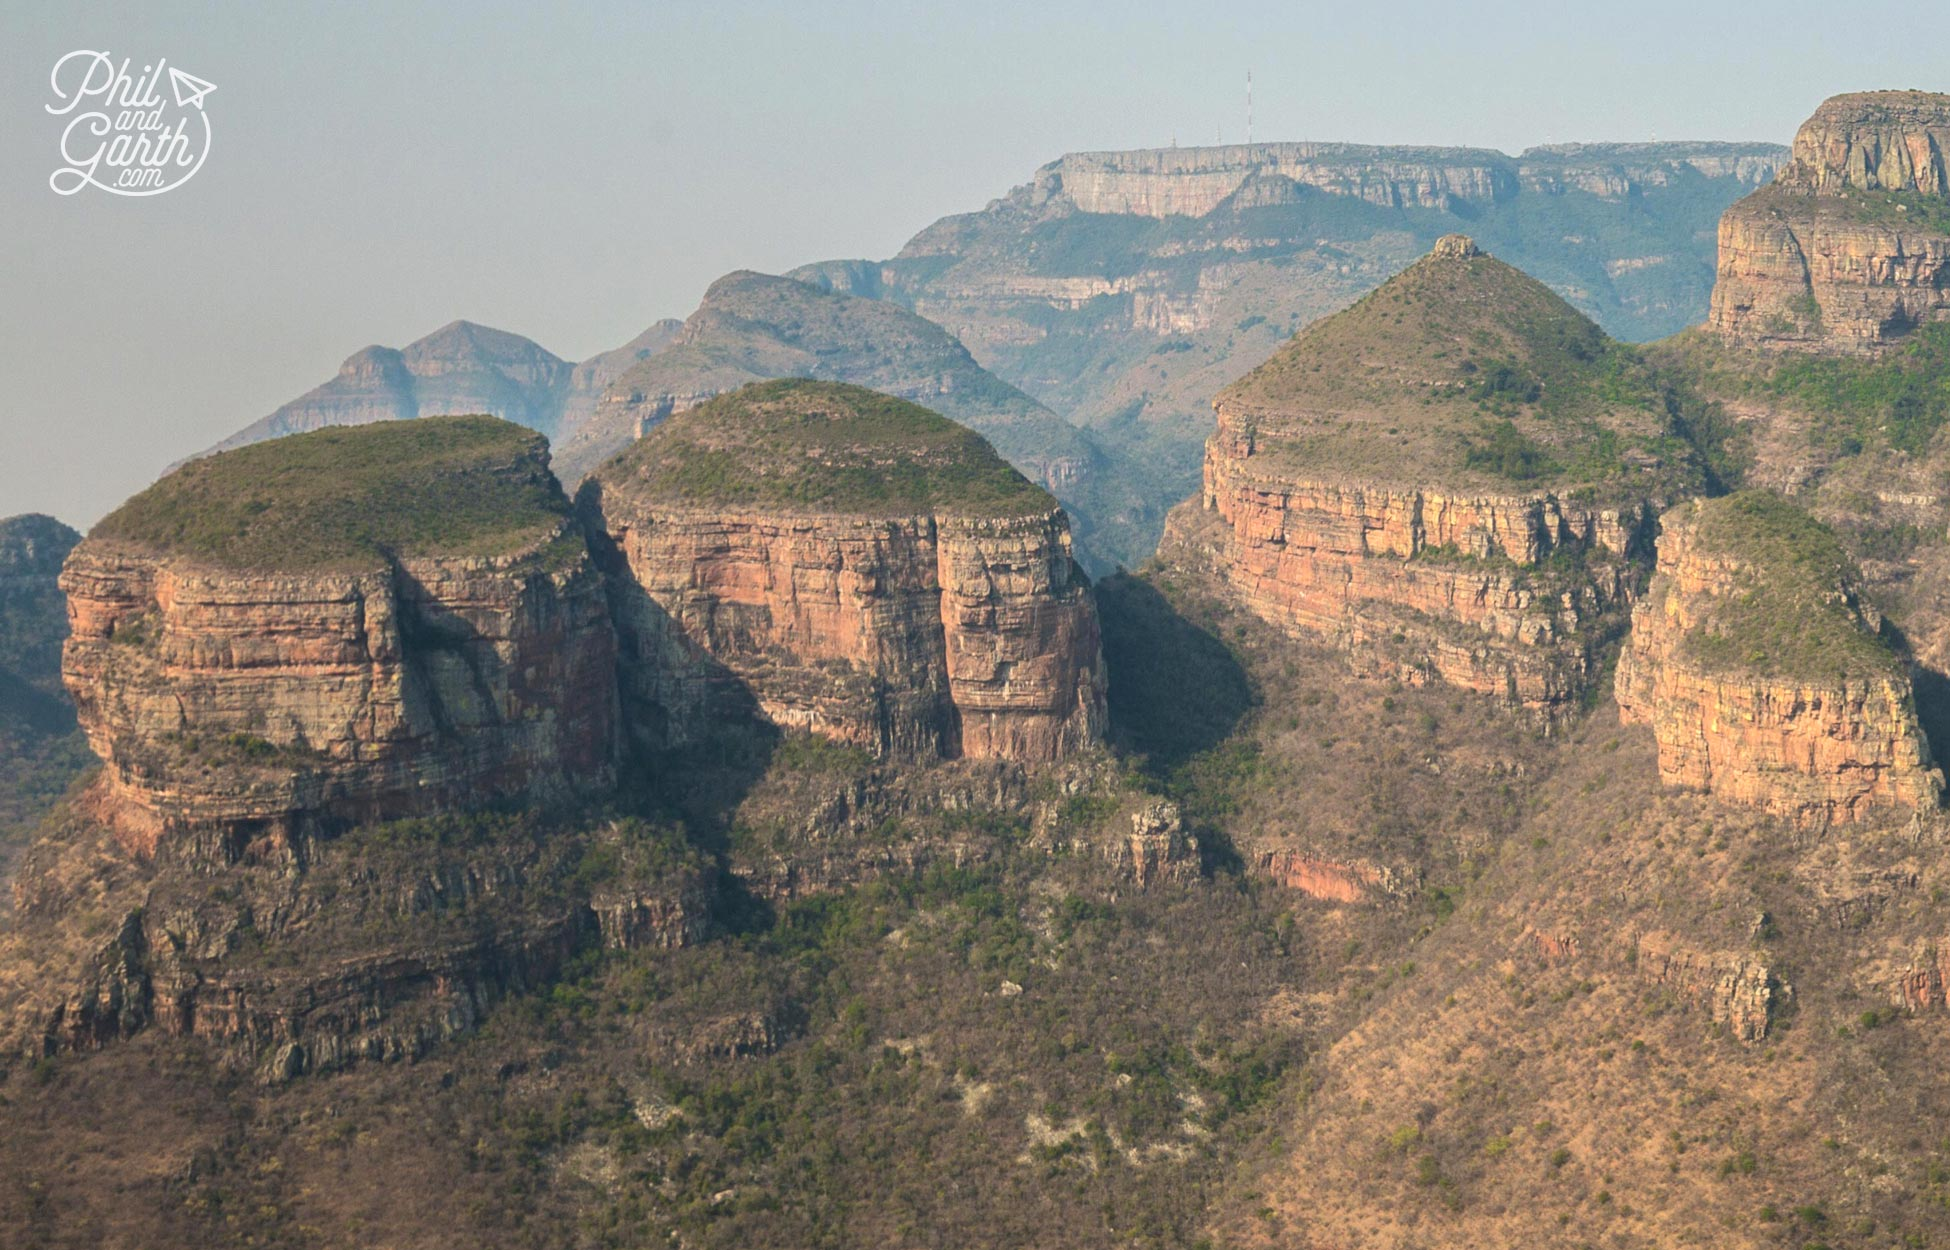 Left to right - Magabolle, Mogoladikwe and Maseroto - the Three Rondavels, Blyde River Canyon